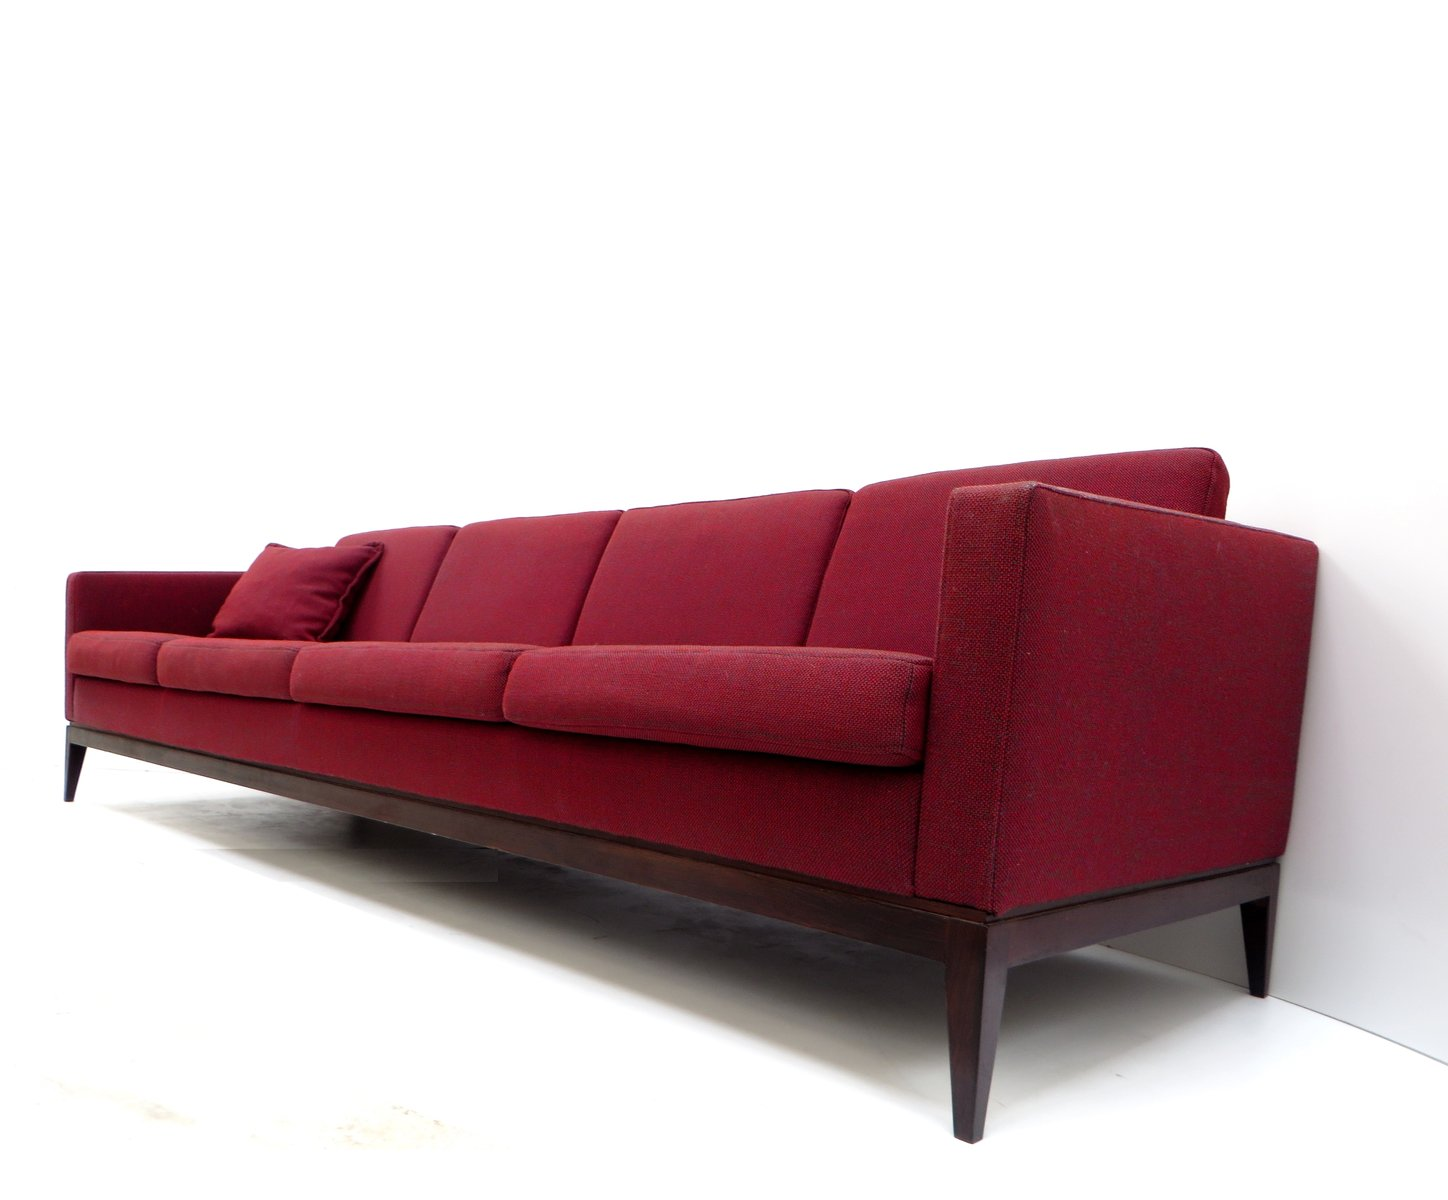 Sofa Dreams France Large Vintage Burgundy Four Seater Sofa For Sale At Pamono